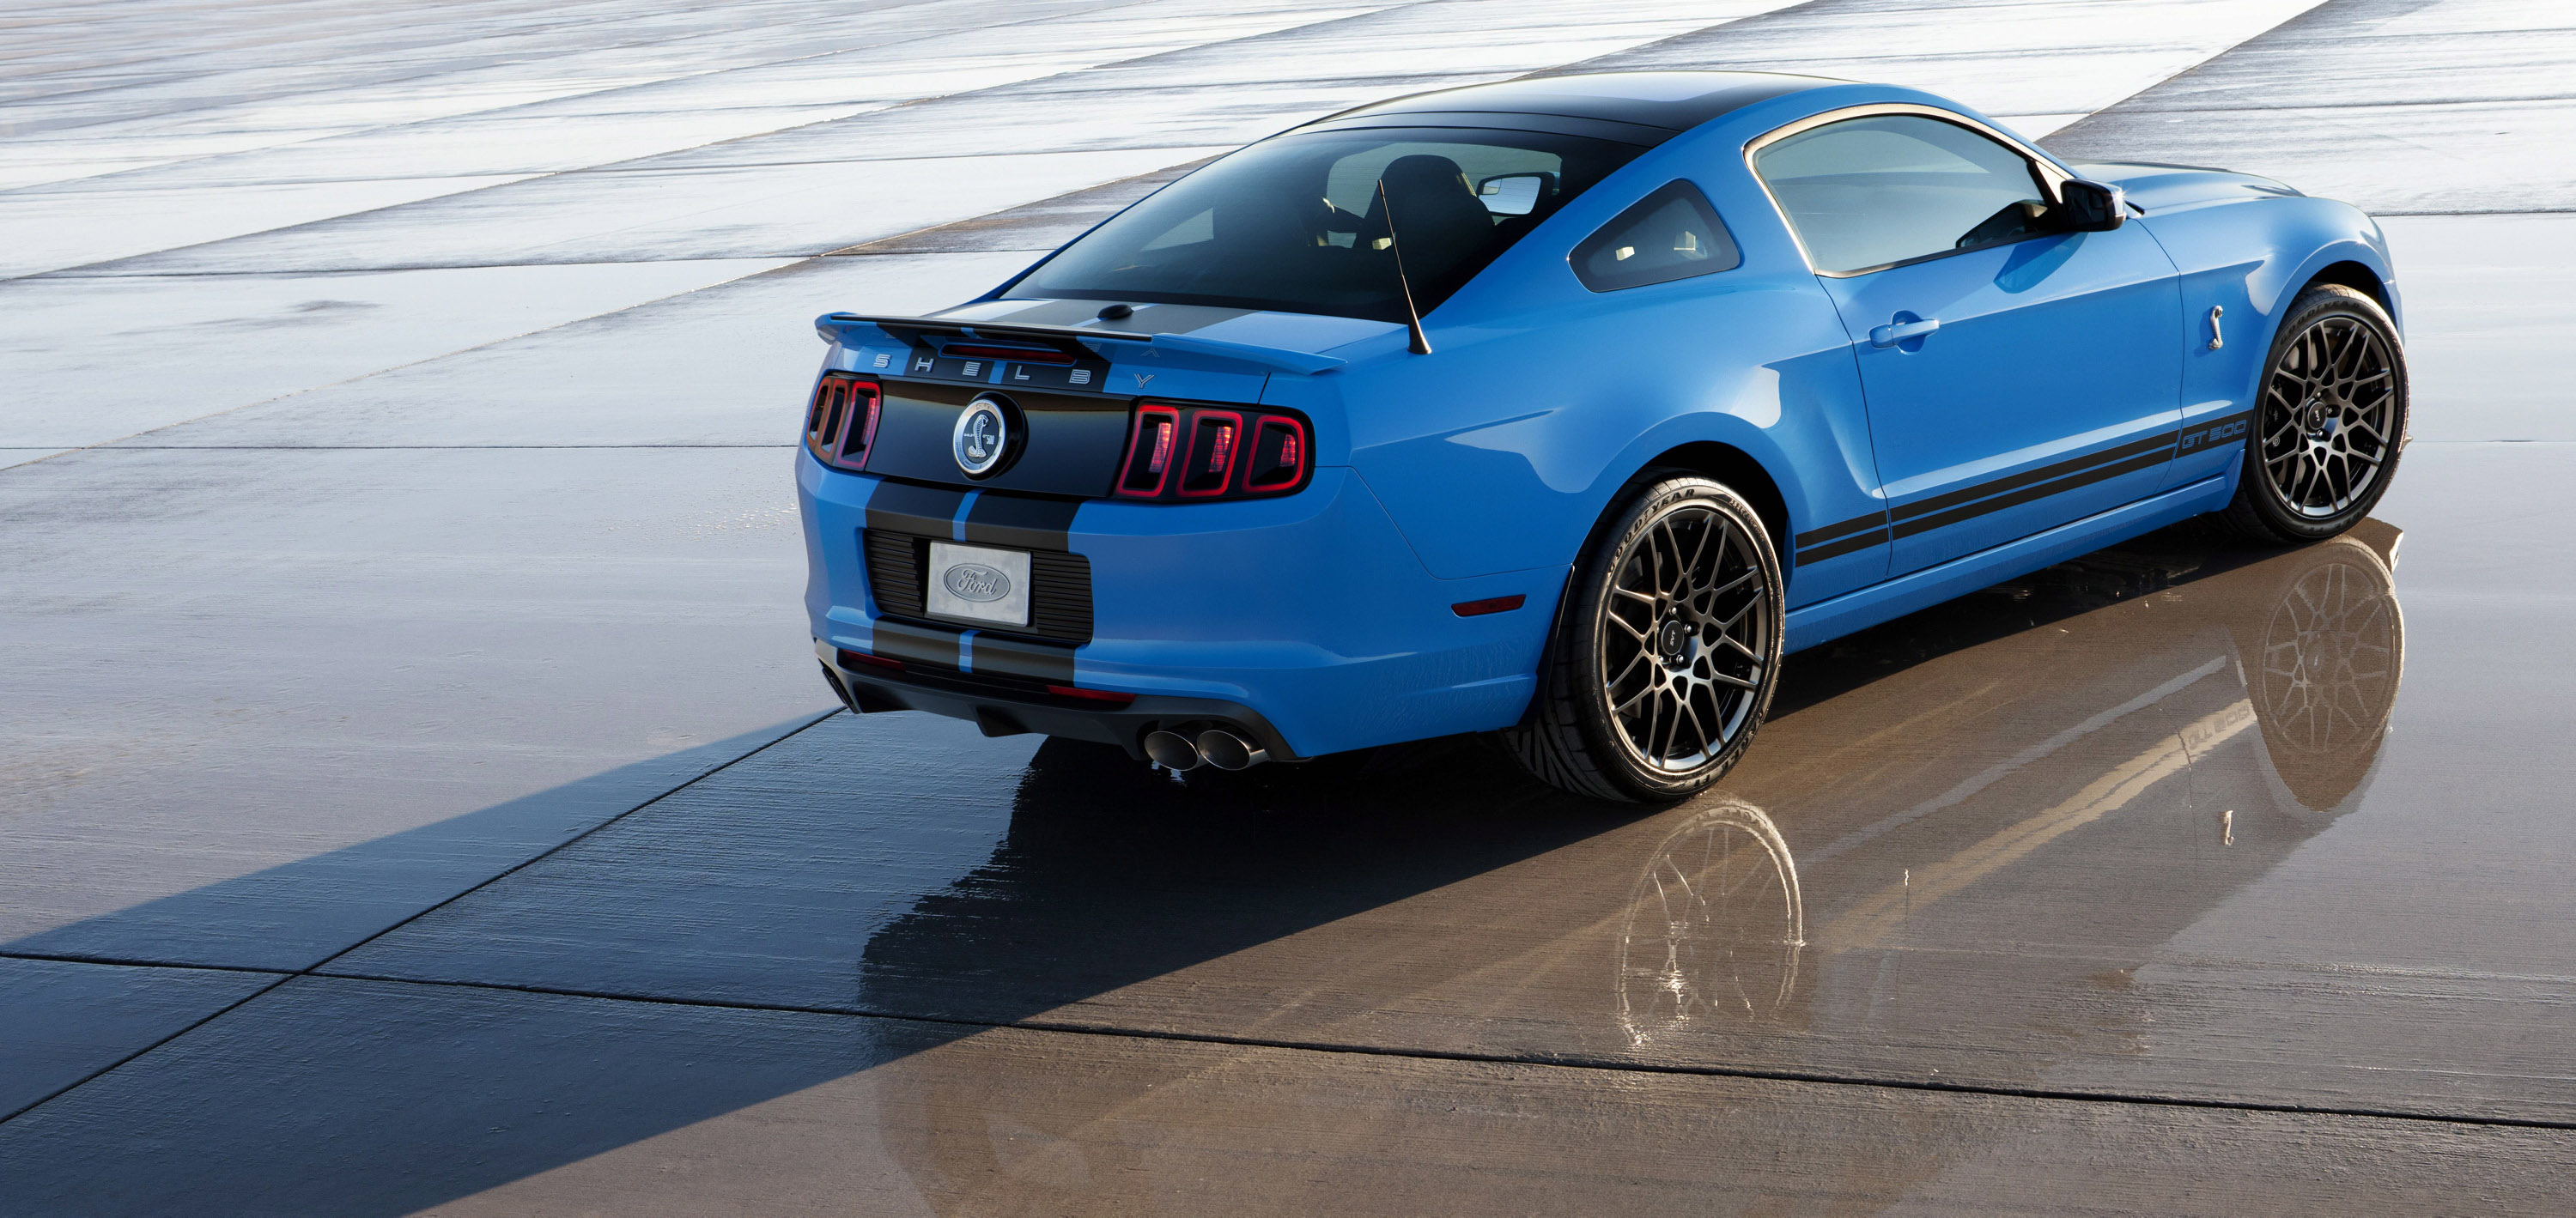 2013 Ford Shelby GT500 Picture #4 of 11